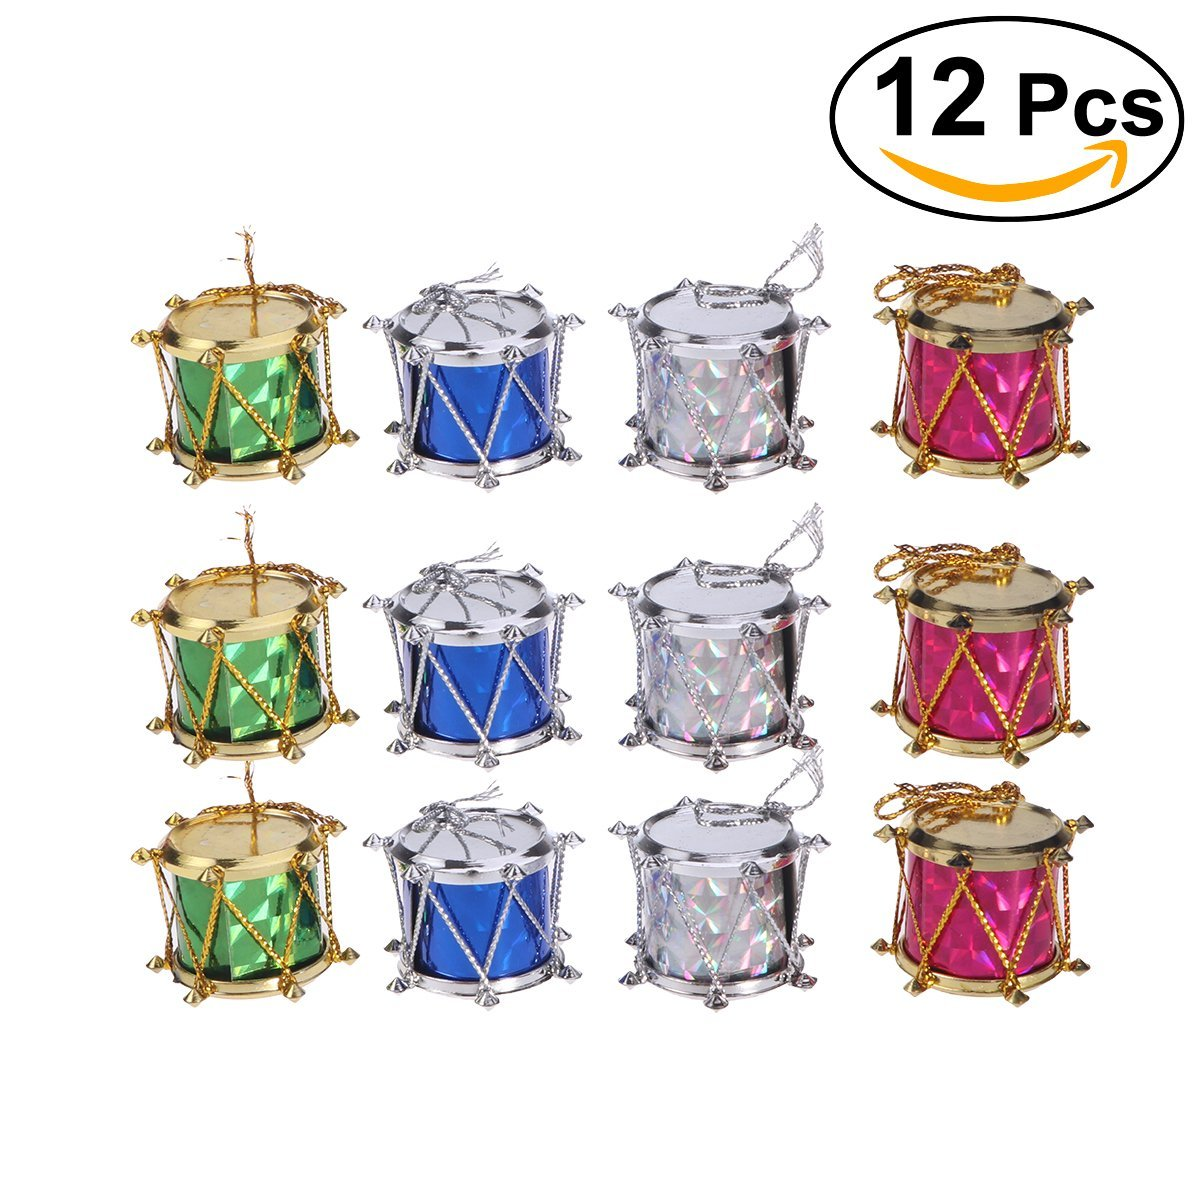 Tinksky Colorful Glitter Mini Drum Christmas Tree Ornaments Hanging Decoration Pendant Christmas Holiday Wedding Party Decor 12pcs (Assorted Color)